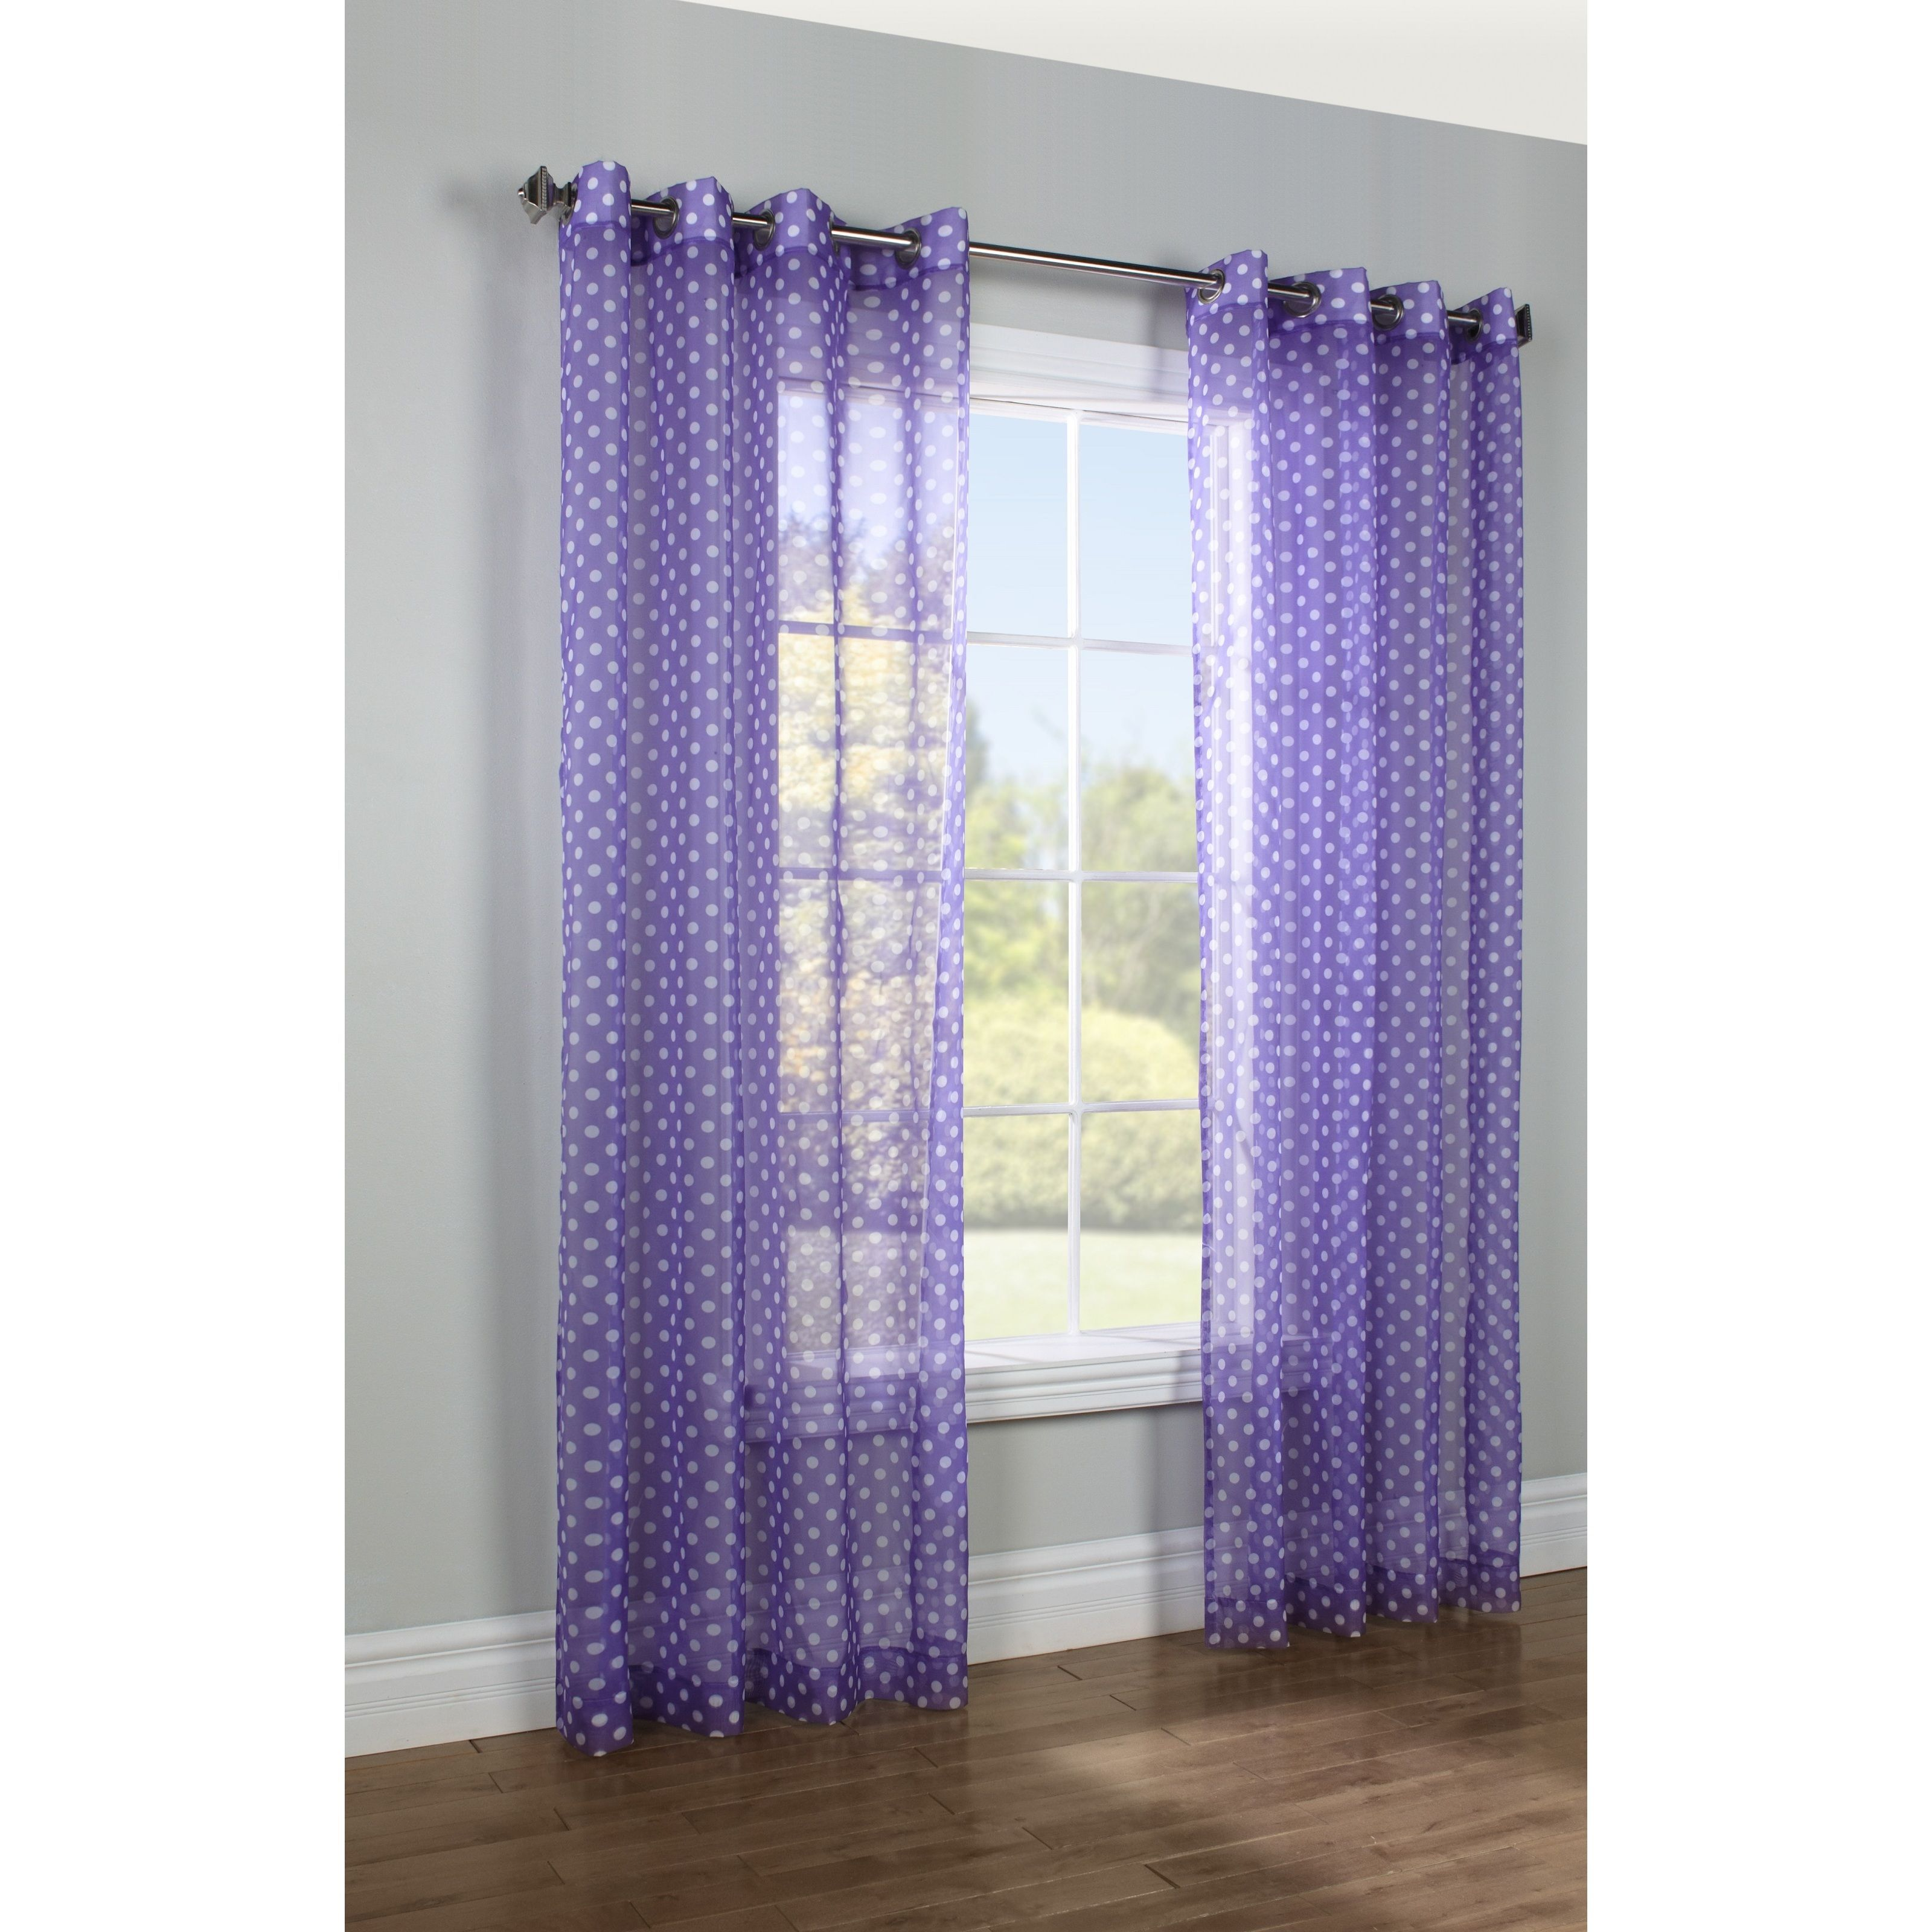 curtain inch top panel sheer fashions drapes grommet color size printed w l curtains dot purple or pin x home dots single commonwealth polka